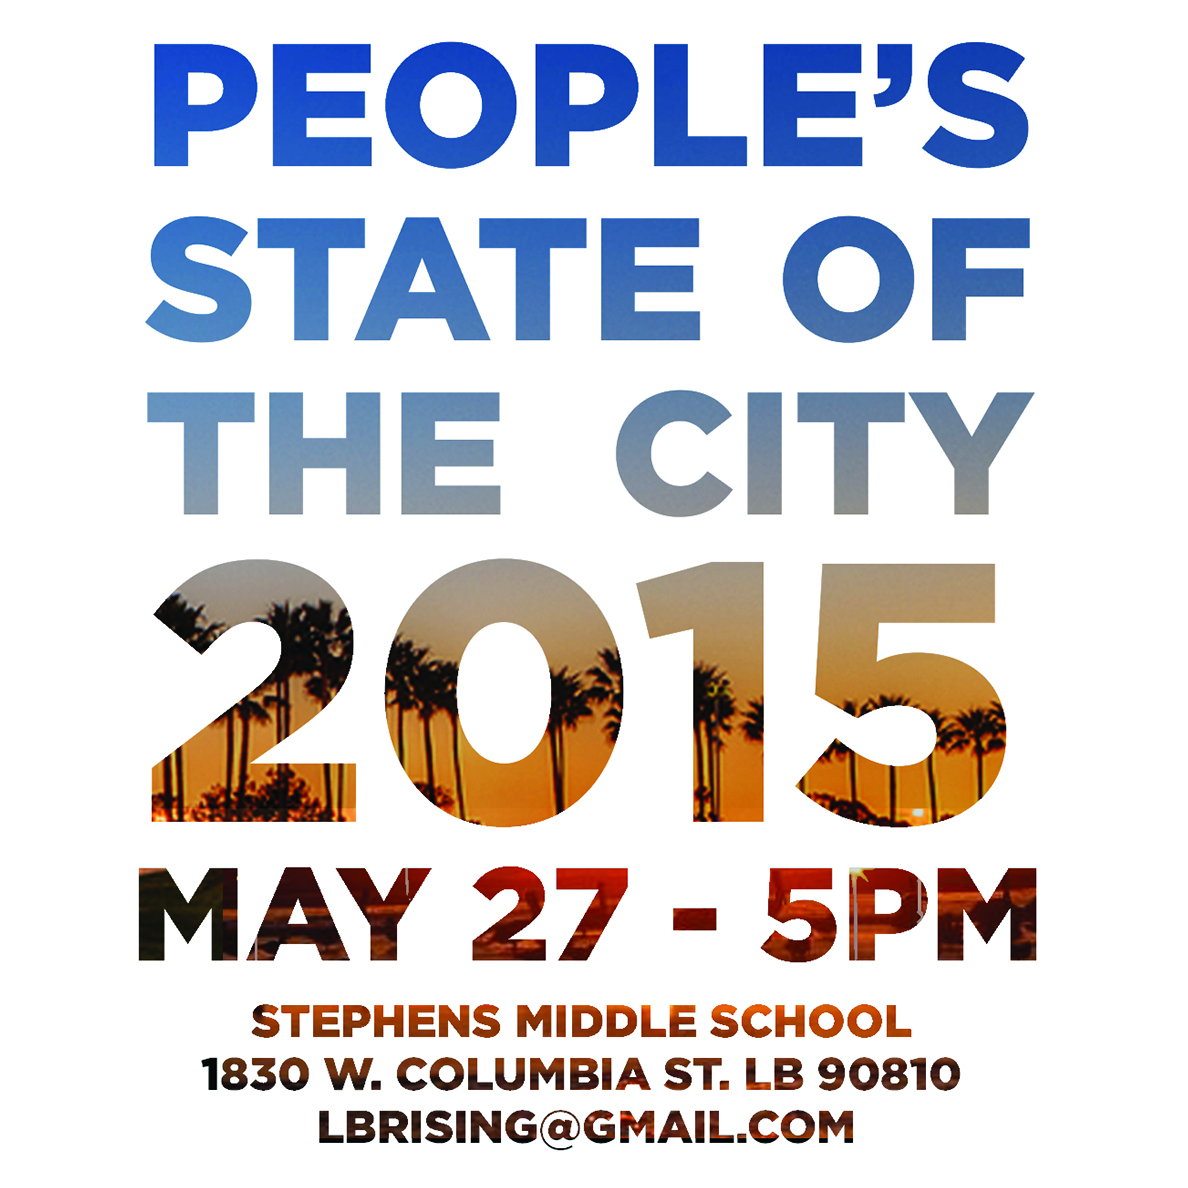 People's State of the City